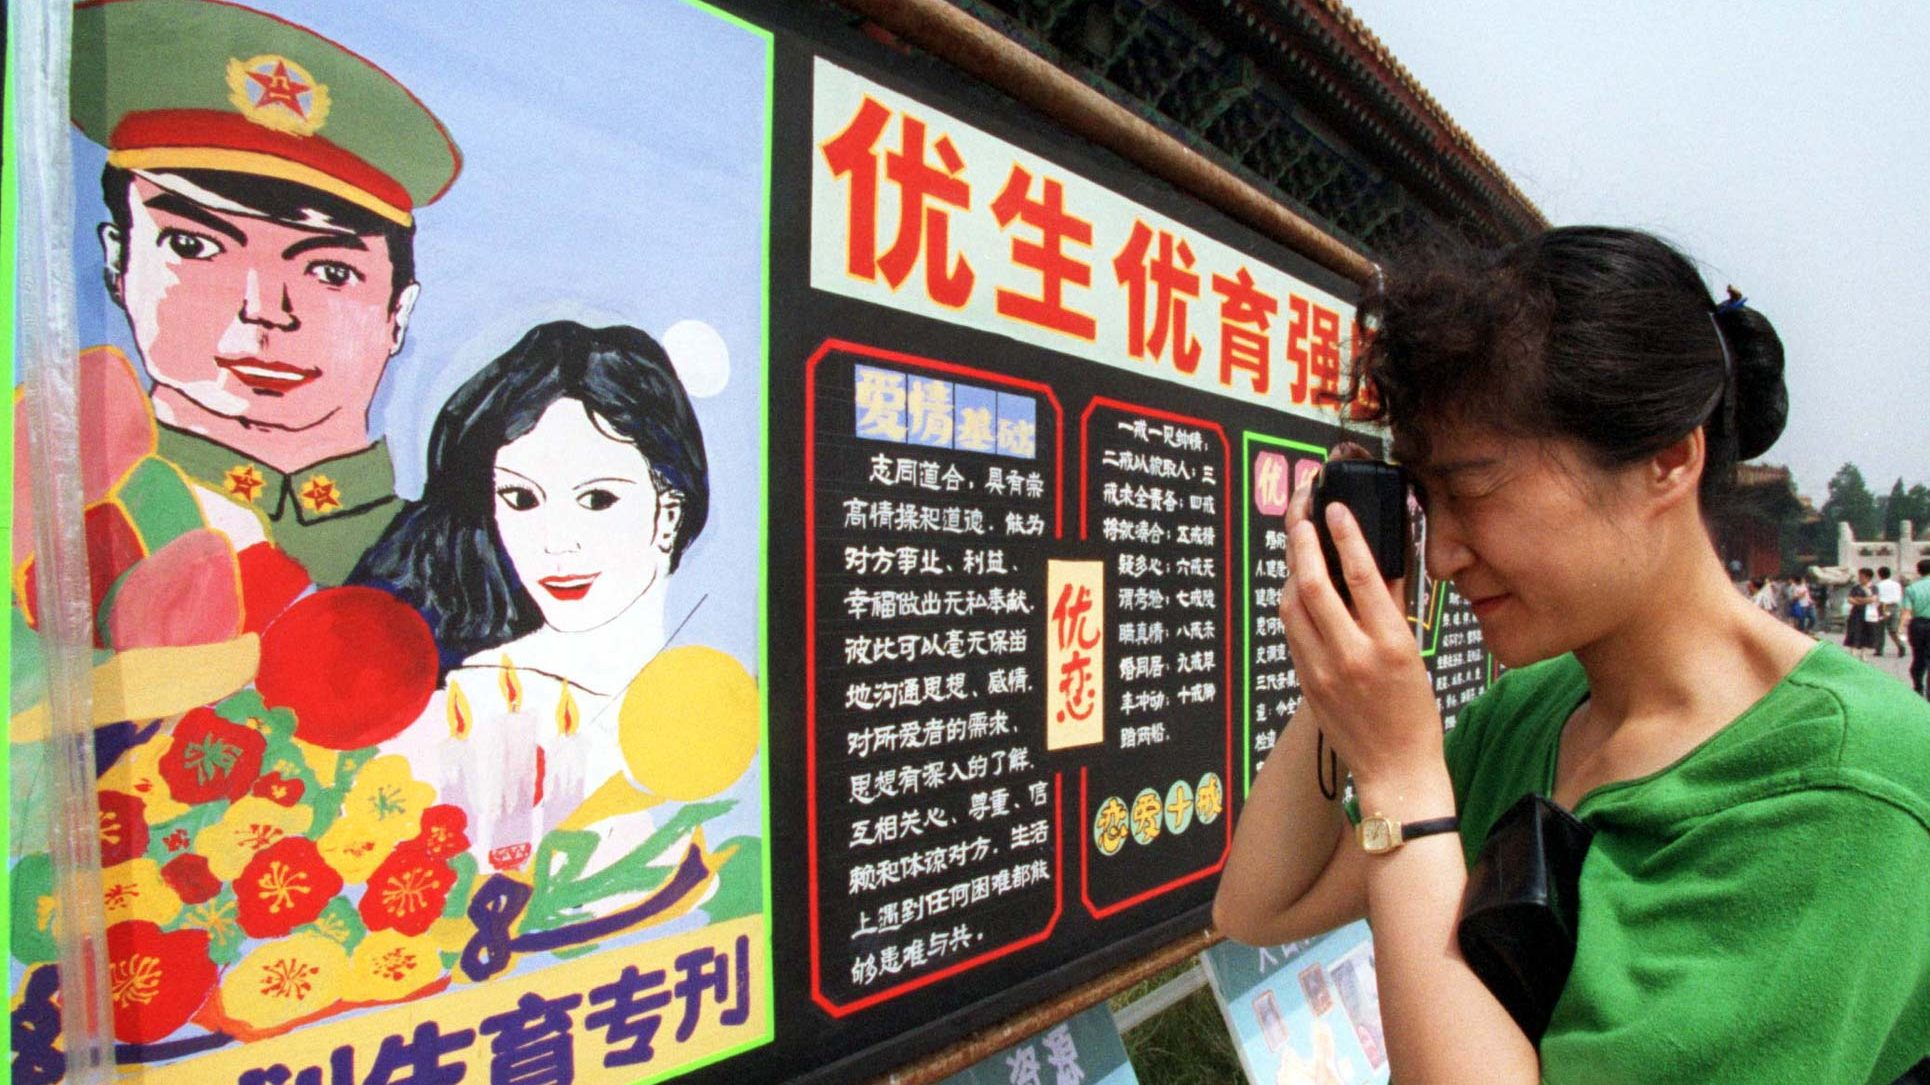 """A visitor to a World Population Day exhibition in Beijing takes a photo of a propaganda billboard encouraging people to follow China's family planning policies, July 10, 1998. One slogan says, """"One is too few, while two are just right."""""""